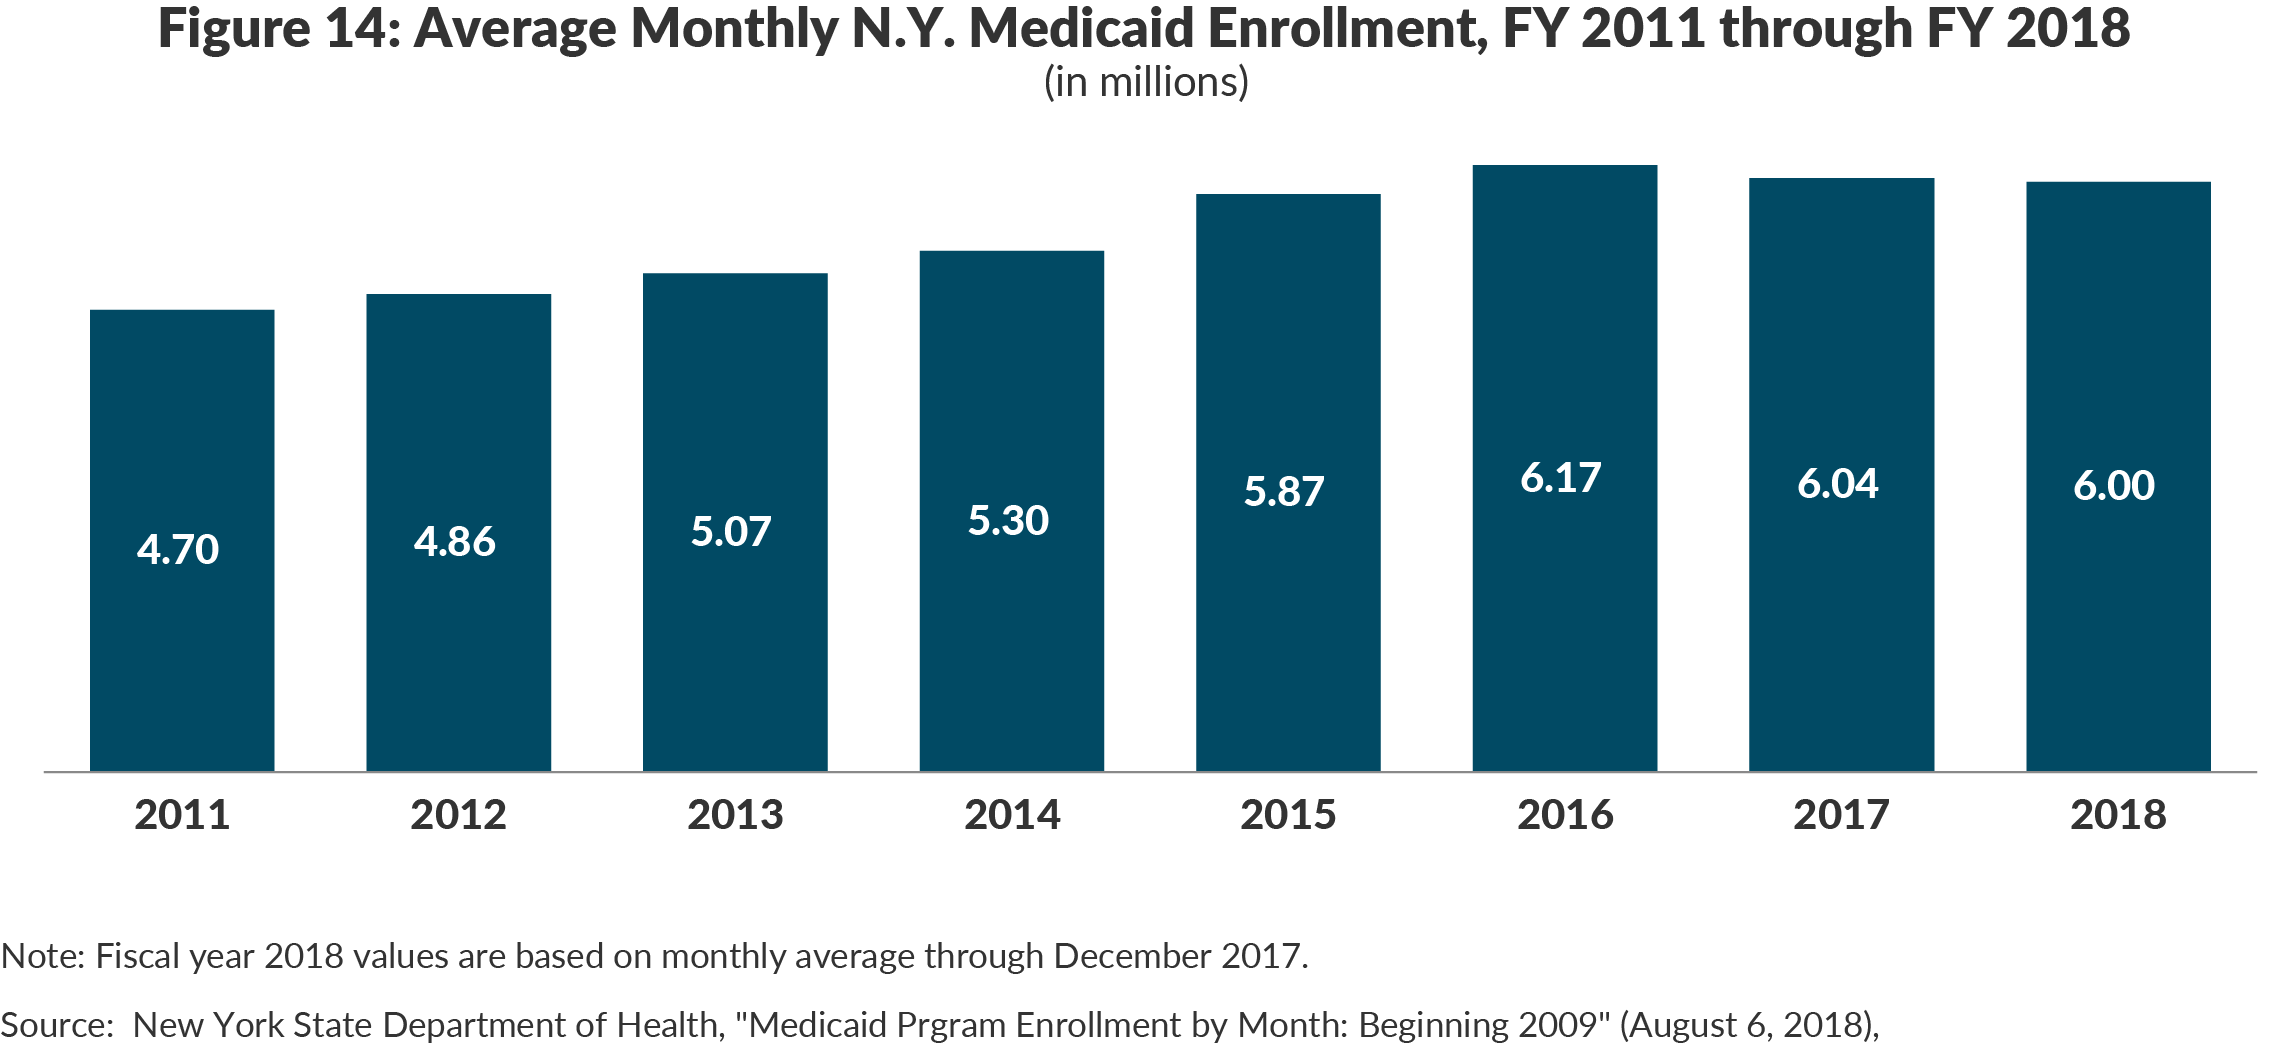 Figure 14: Average Monthly N.Y. Medicaid Enrollment, FY 2011 through FY 2018